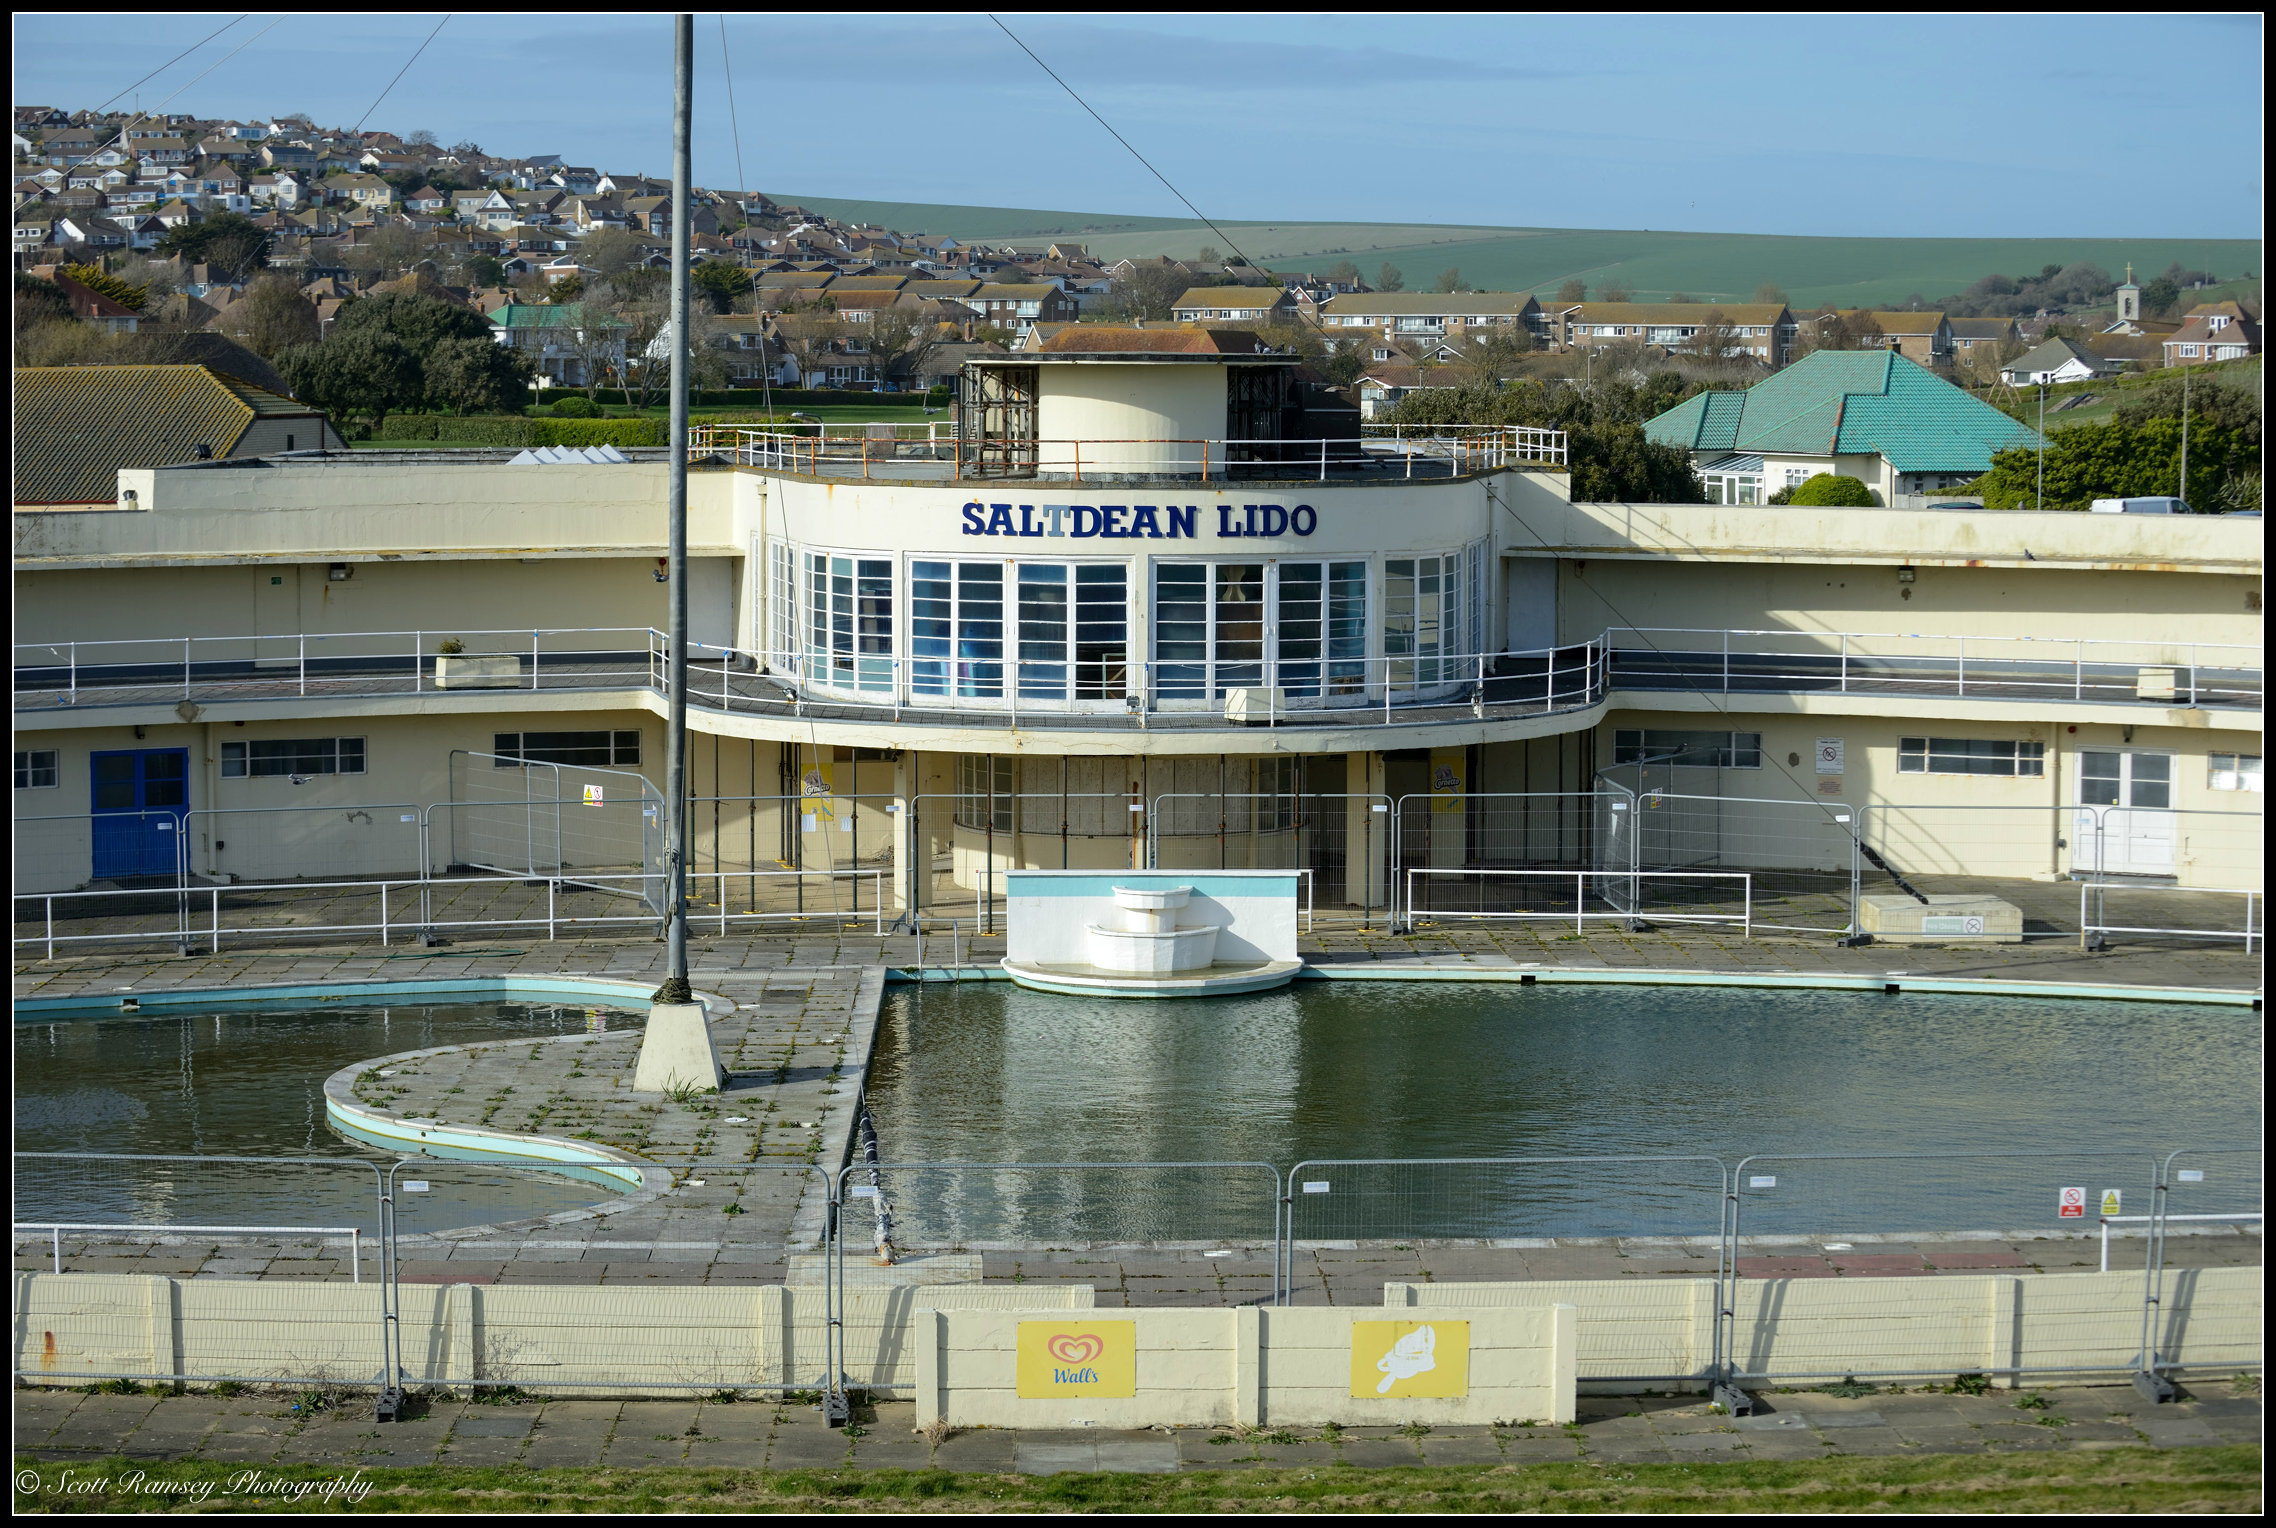 Fenced off and with only local seagulls able toenjoy the open air swimming pool, a derelictSaltdean Lidoin East Sussex, UK. © Scott Ramsey Photography